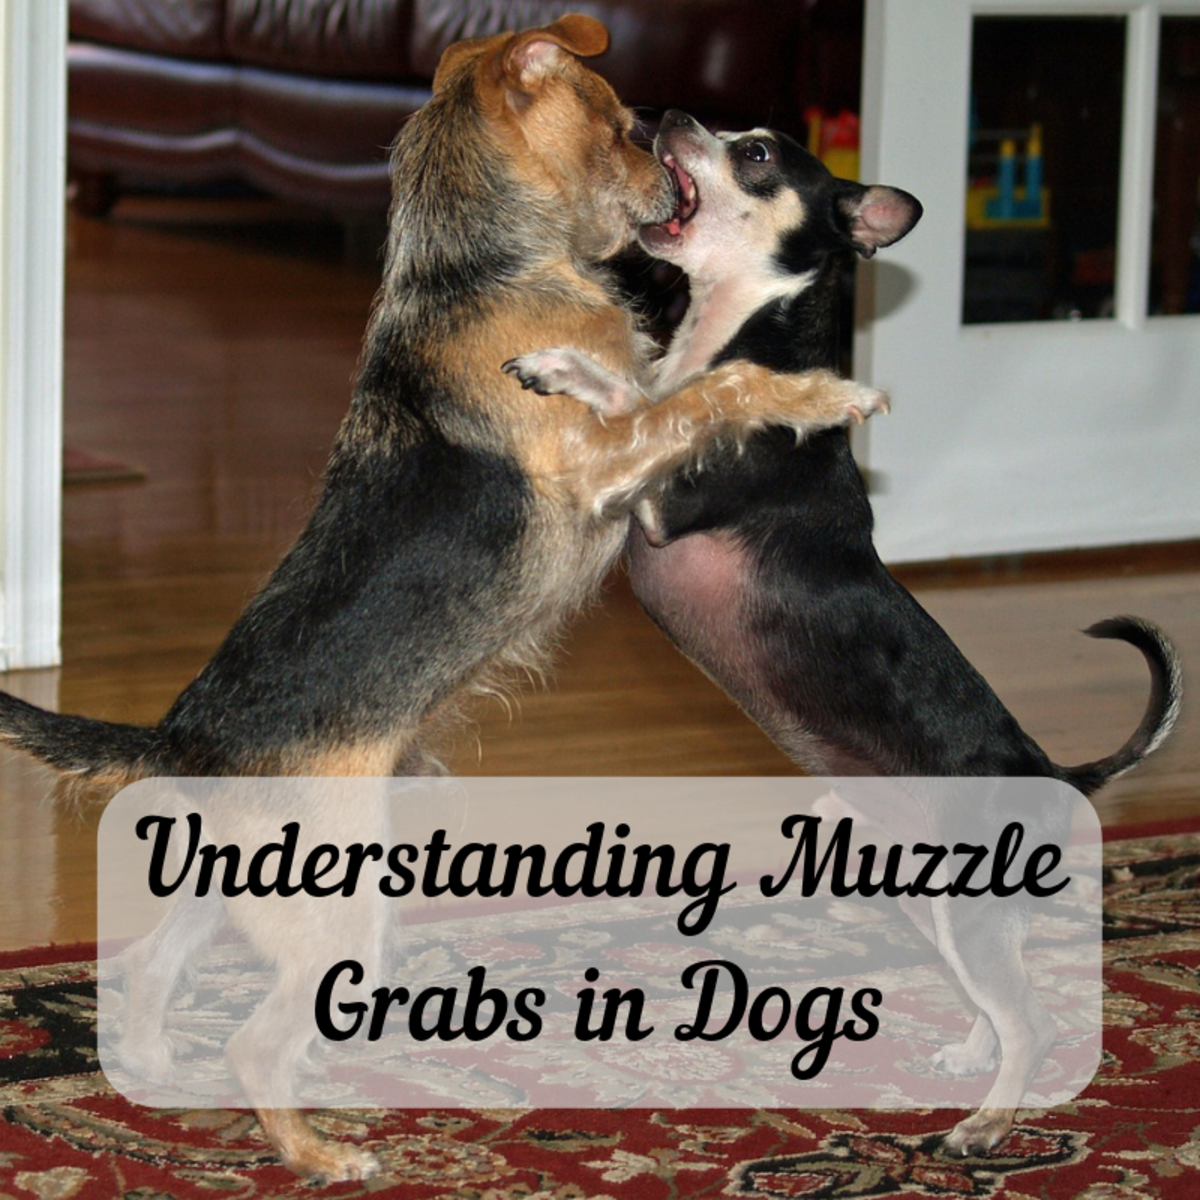 Understanding Muzzle Grabs: Should You Grab Your Dog's Snout?